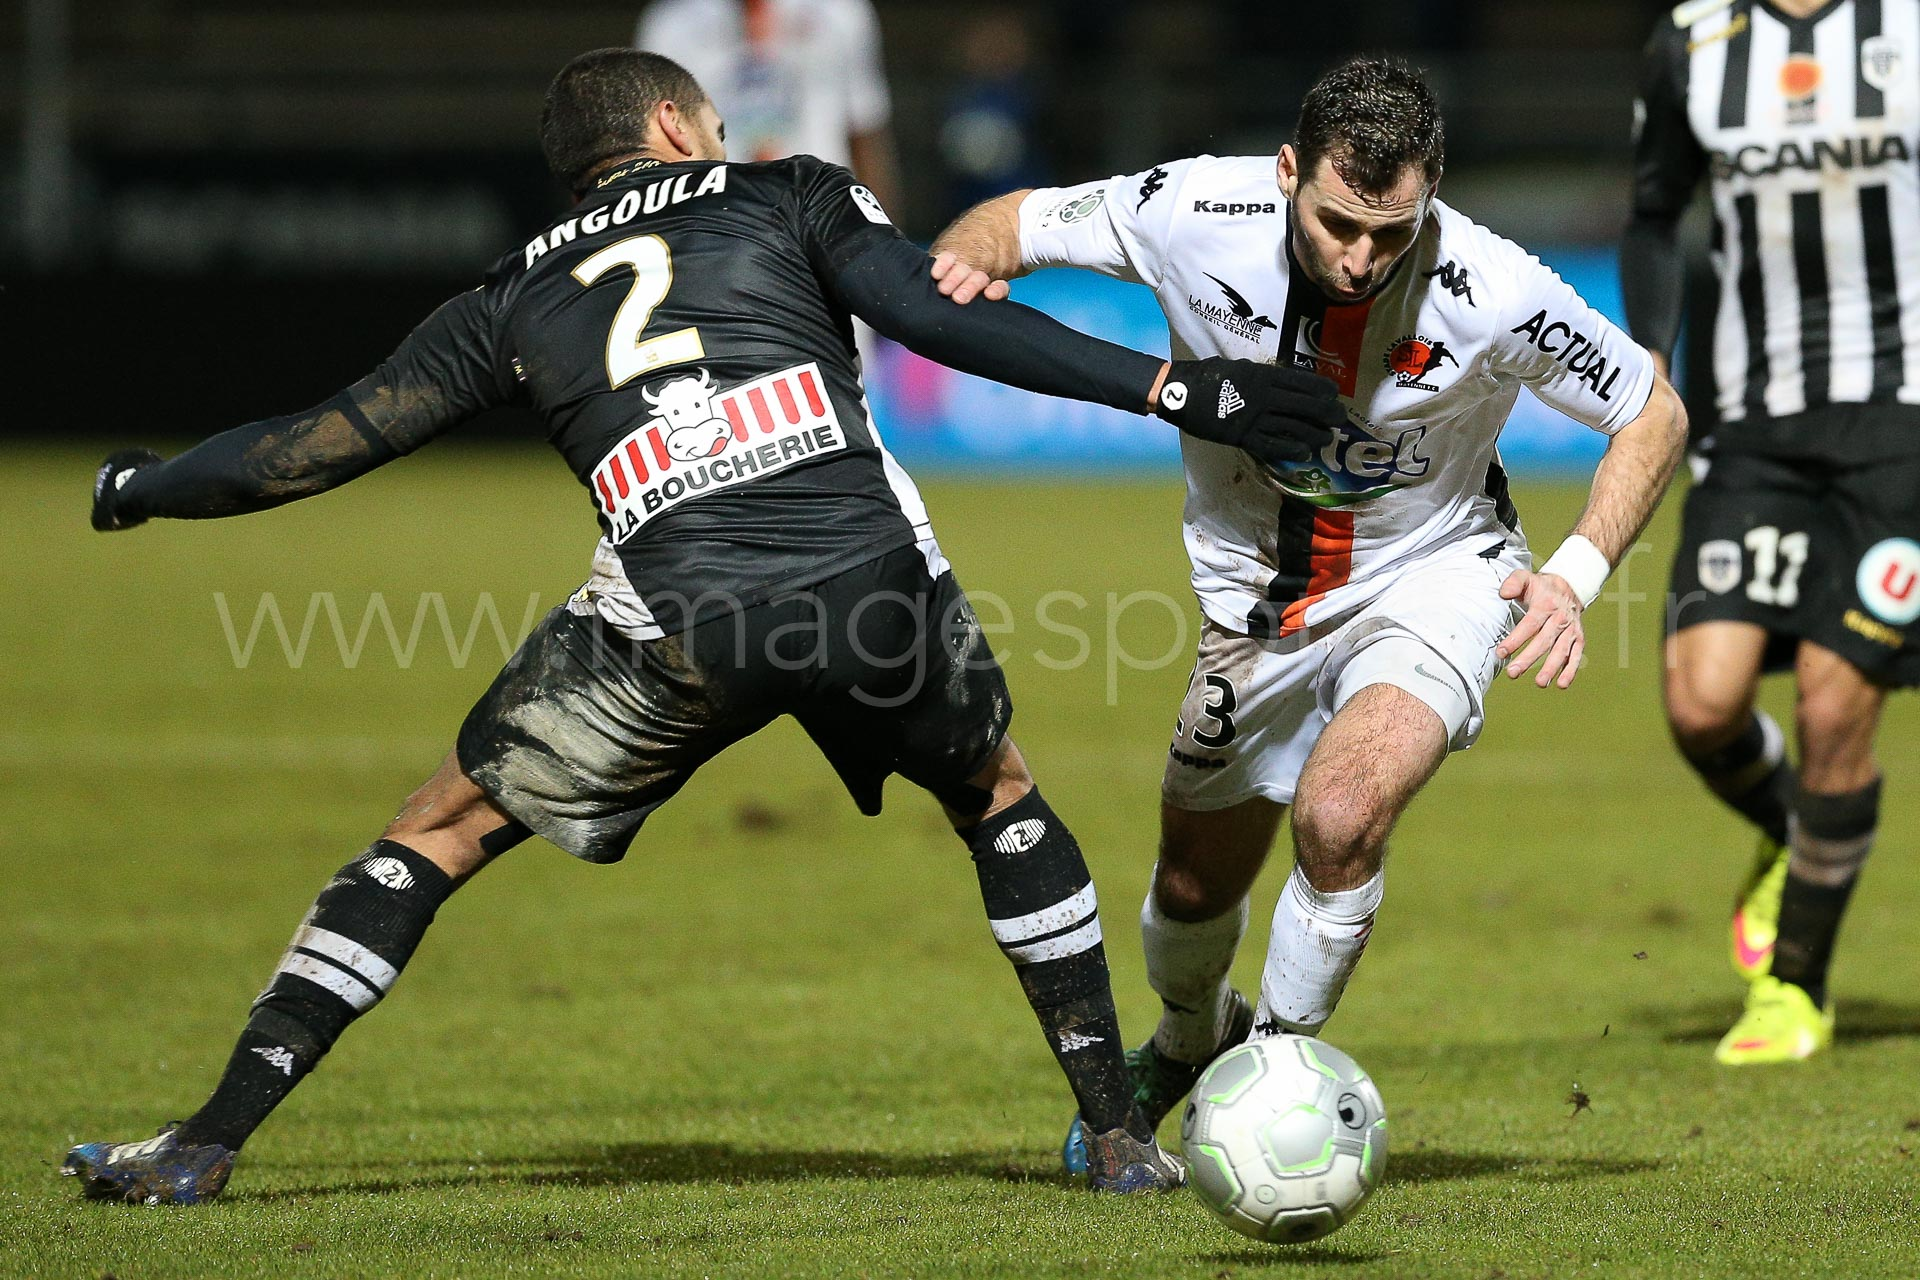 NG-Ligue2-1415-J25-Angers-Laval_11